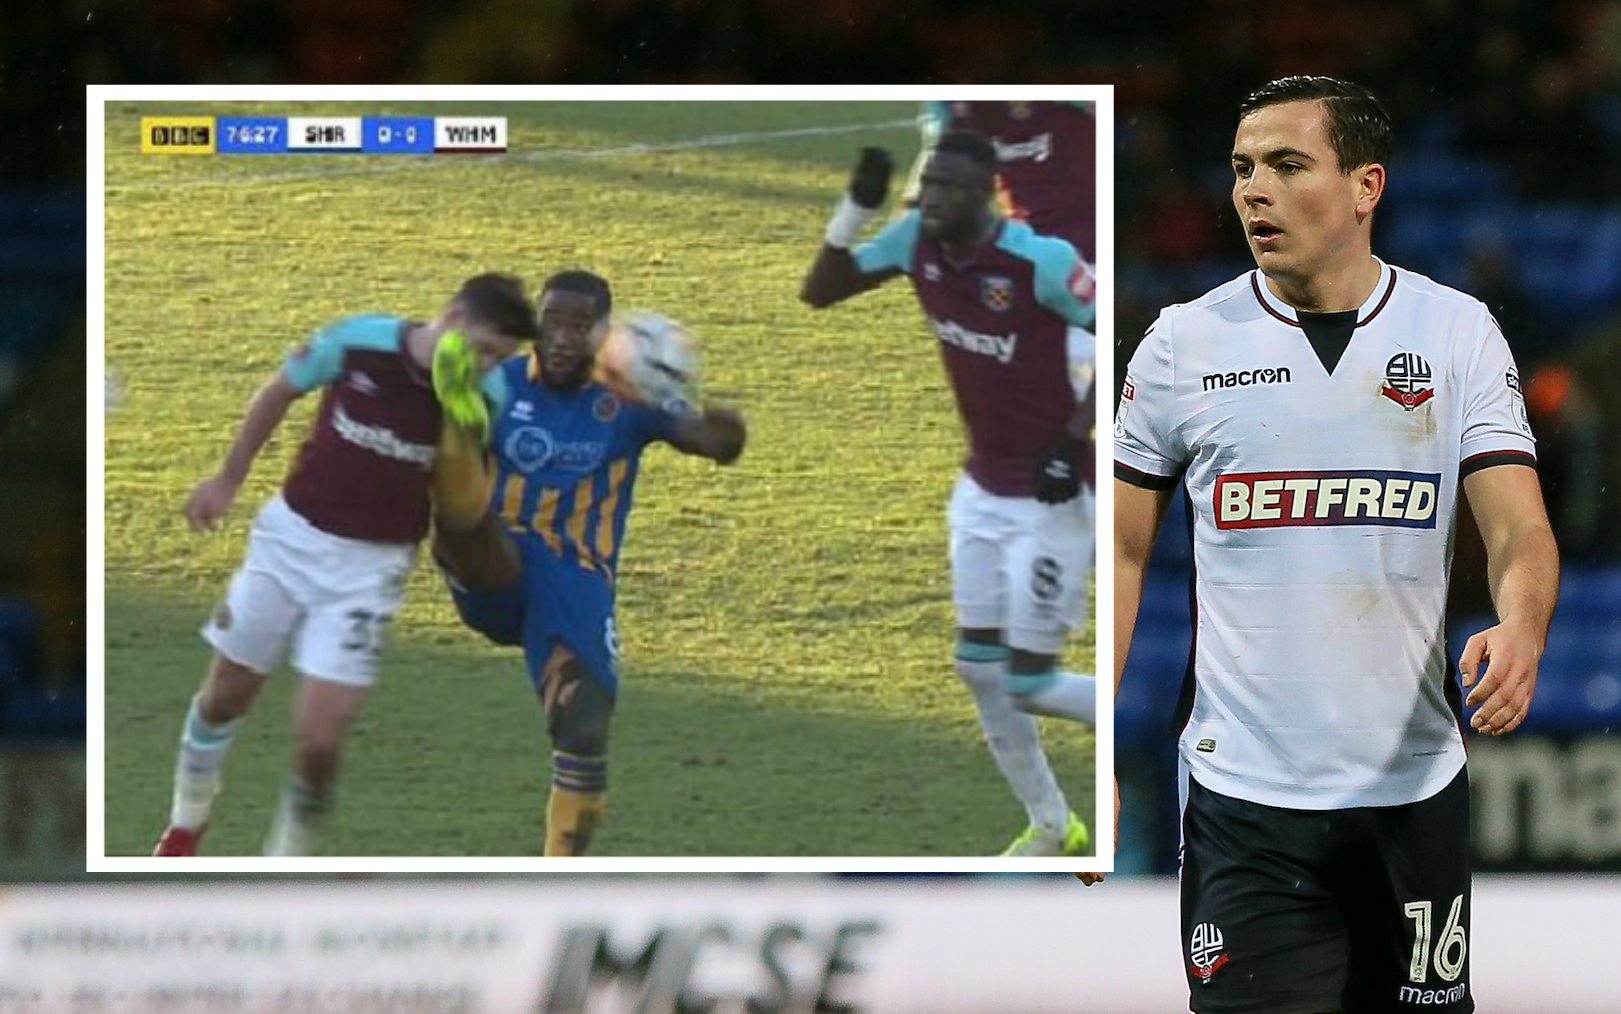 Josh Cullen and, inset, the incident at Shrewsbury which led to him losing a tooth. Pic from BBC Sport.